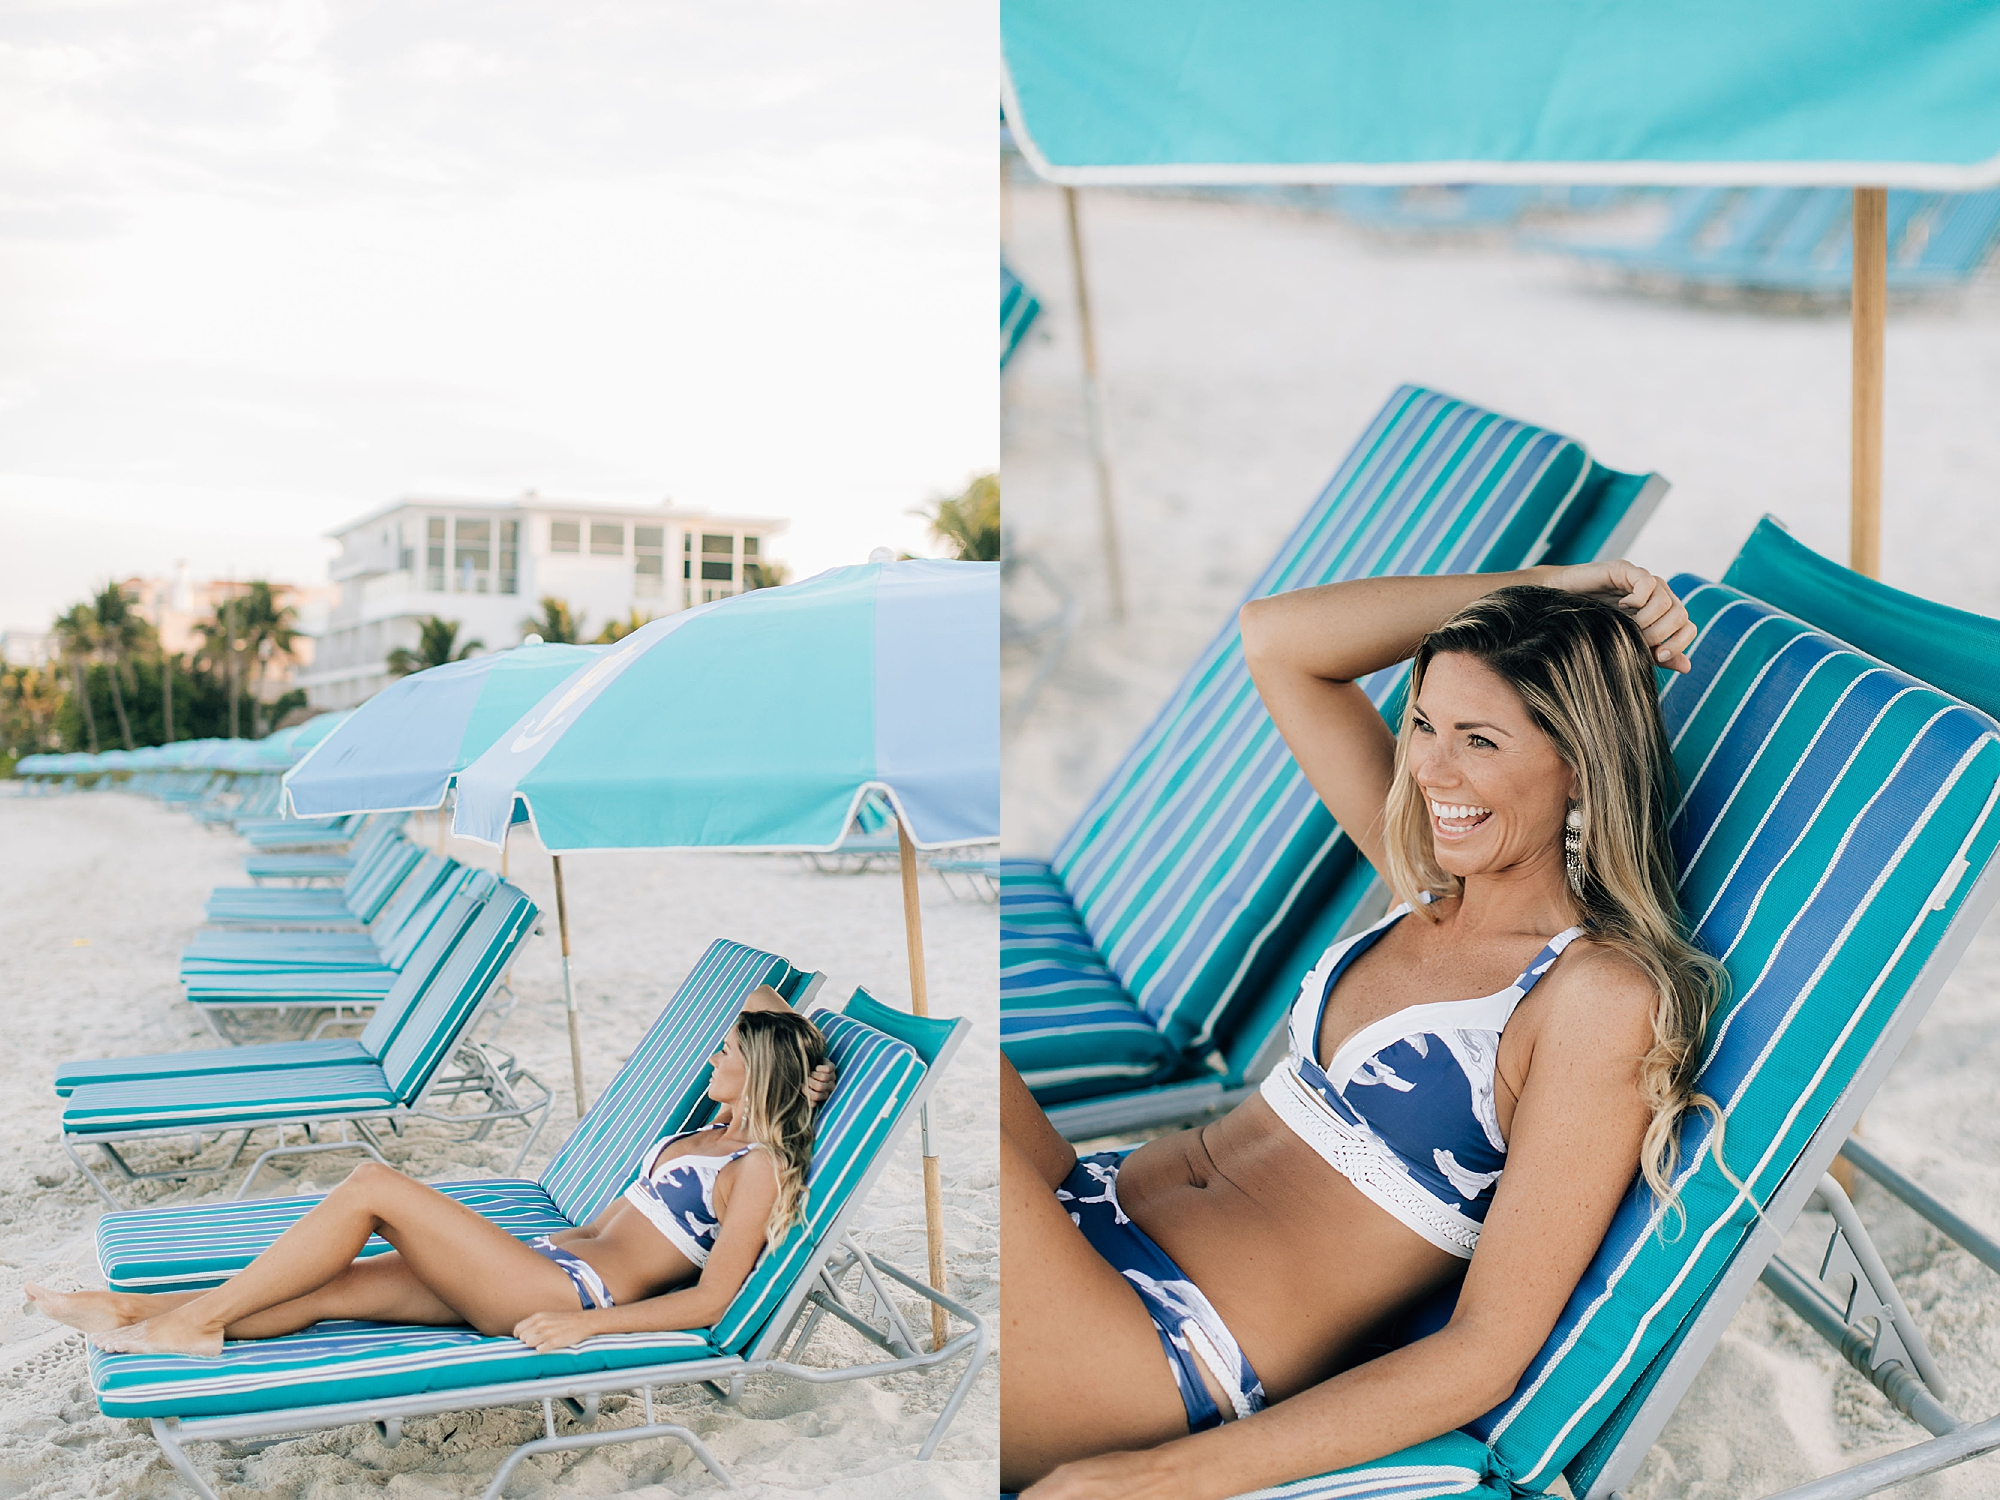 Vibrant and Bright Swimwear Photography by Magdalena Studios for Coveline Swimwear 0011